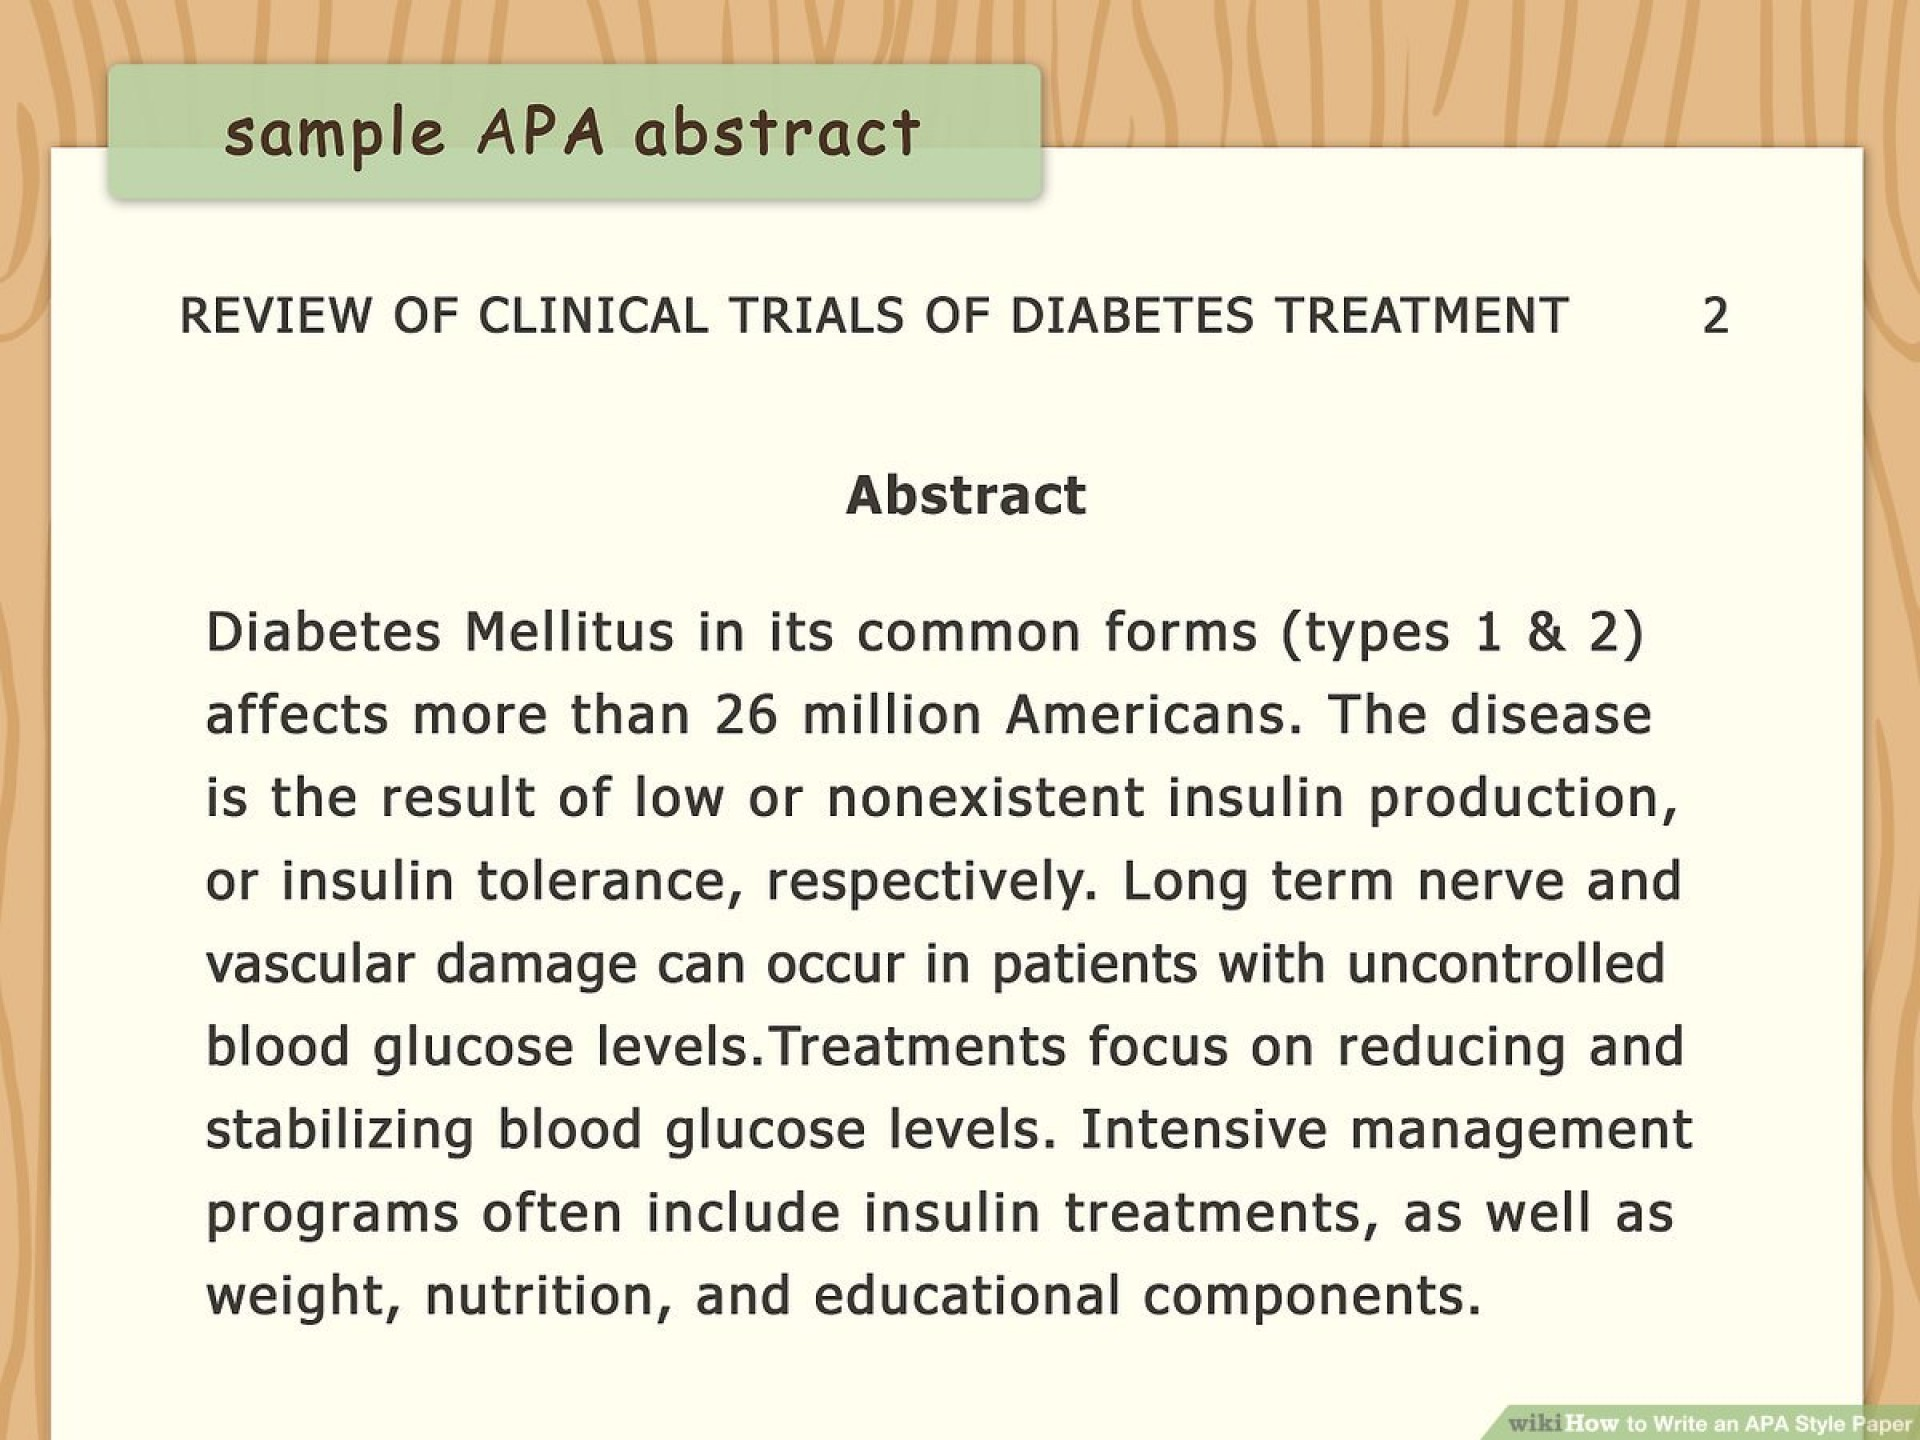 008 Diabetes Mellitus Research Paper Outline Aid1156038 V4 1200px Write An Apa Style Step Version Rare 1920